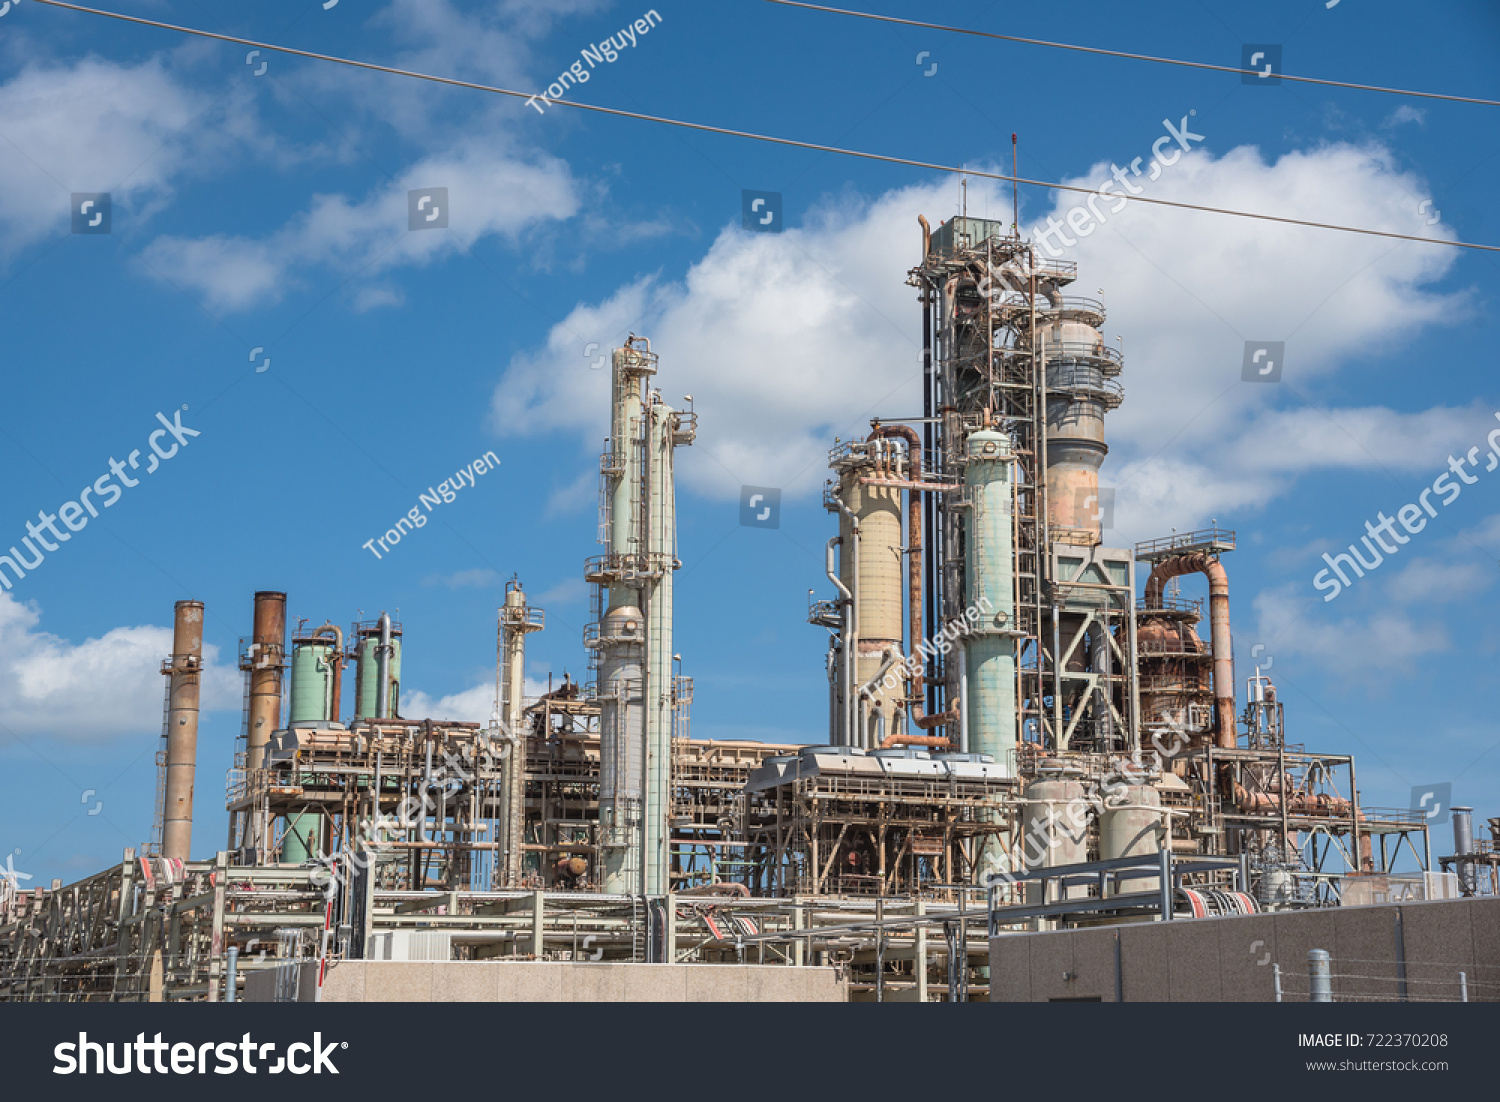 Oil Refinery Oil Factory Petrochemical Plant Stock Photo (Edit Now